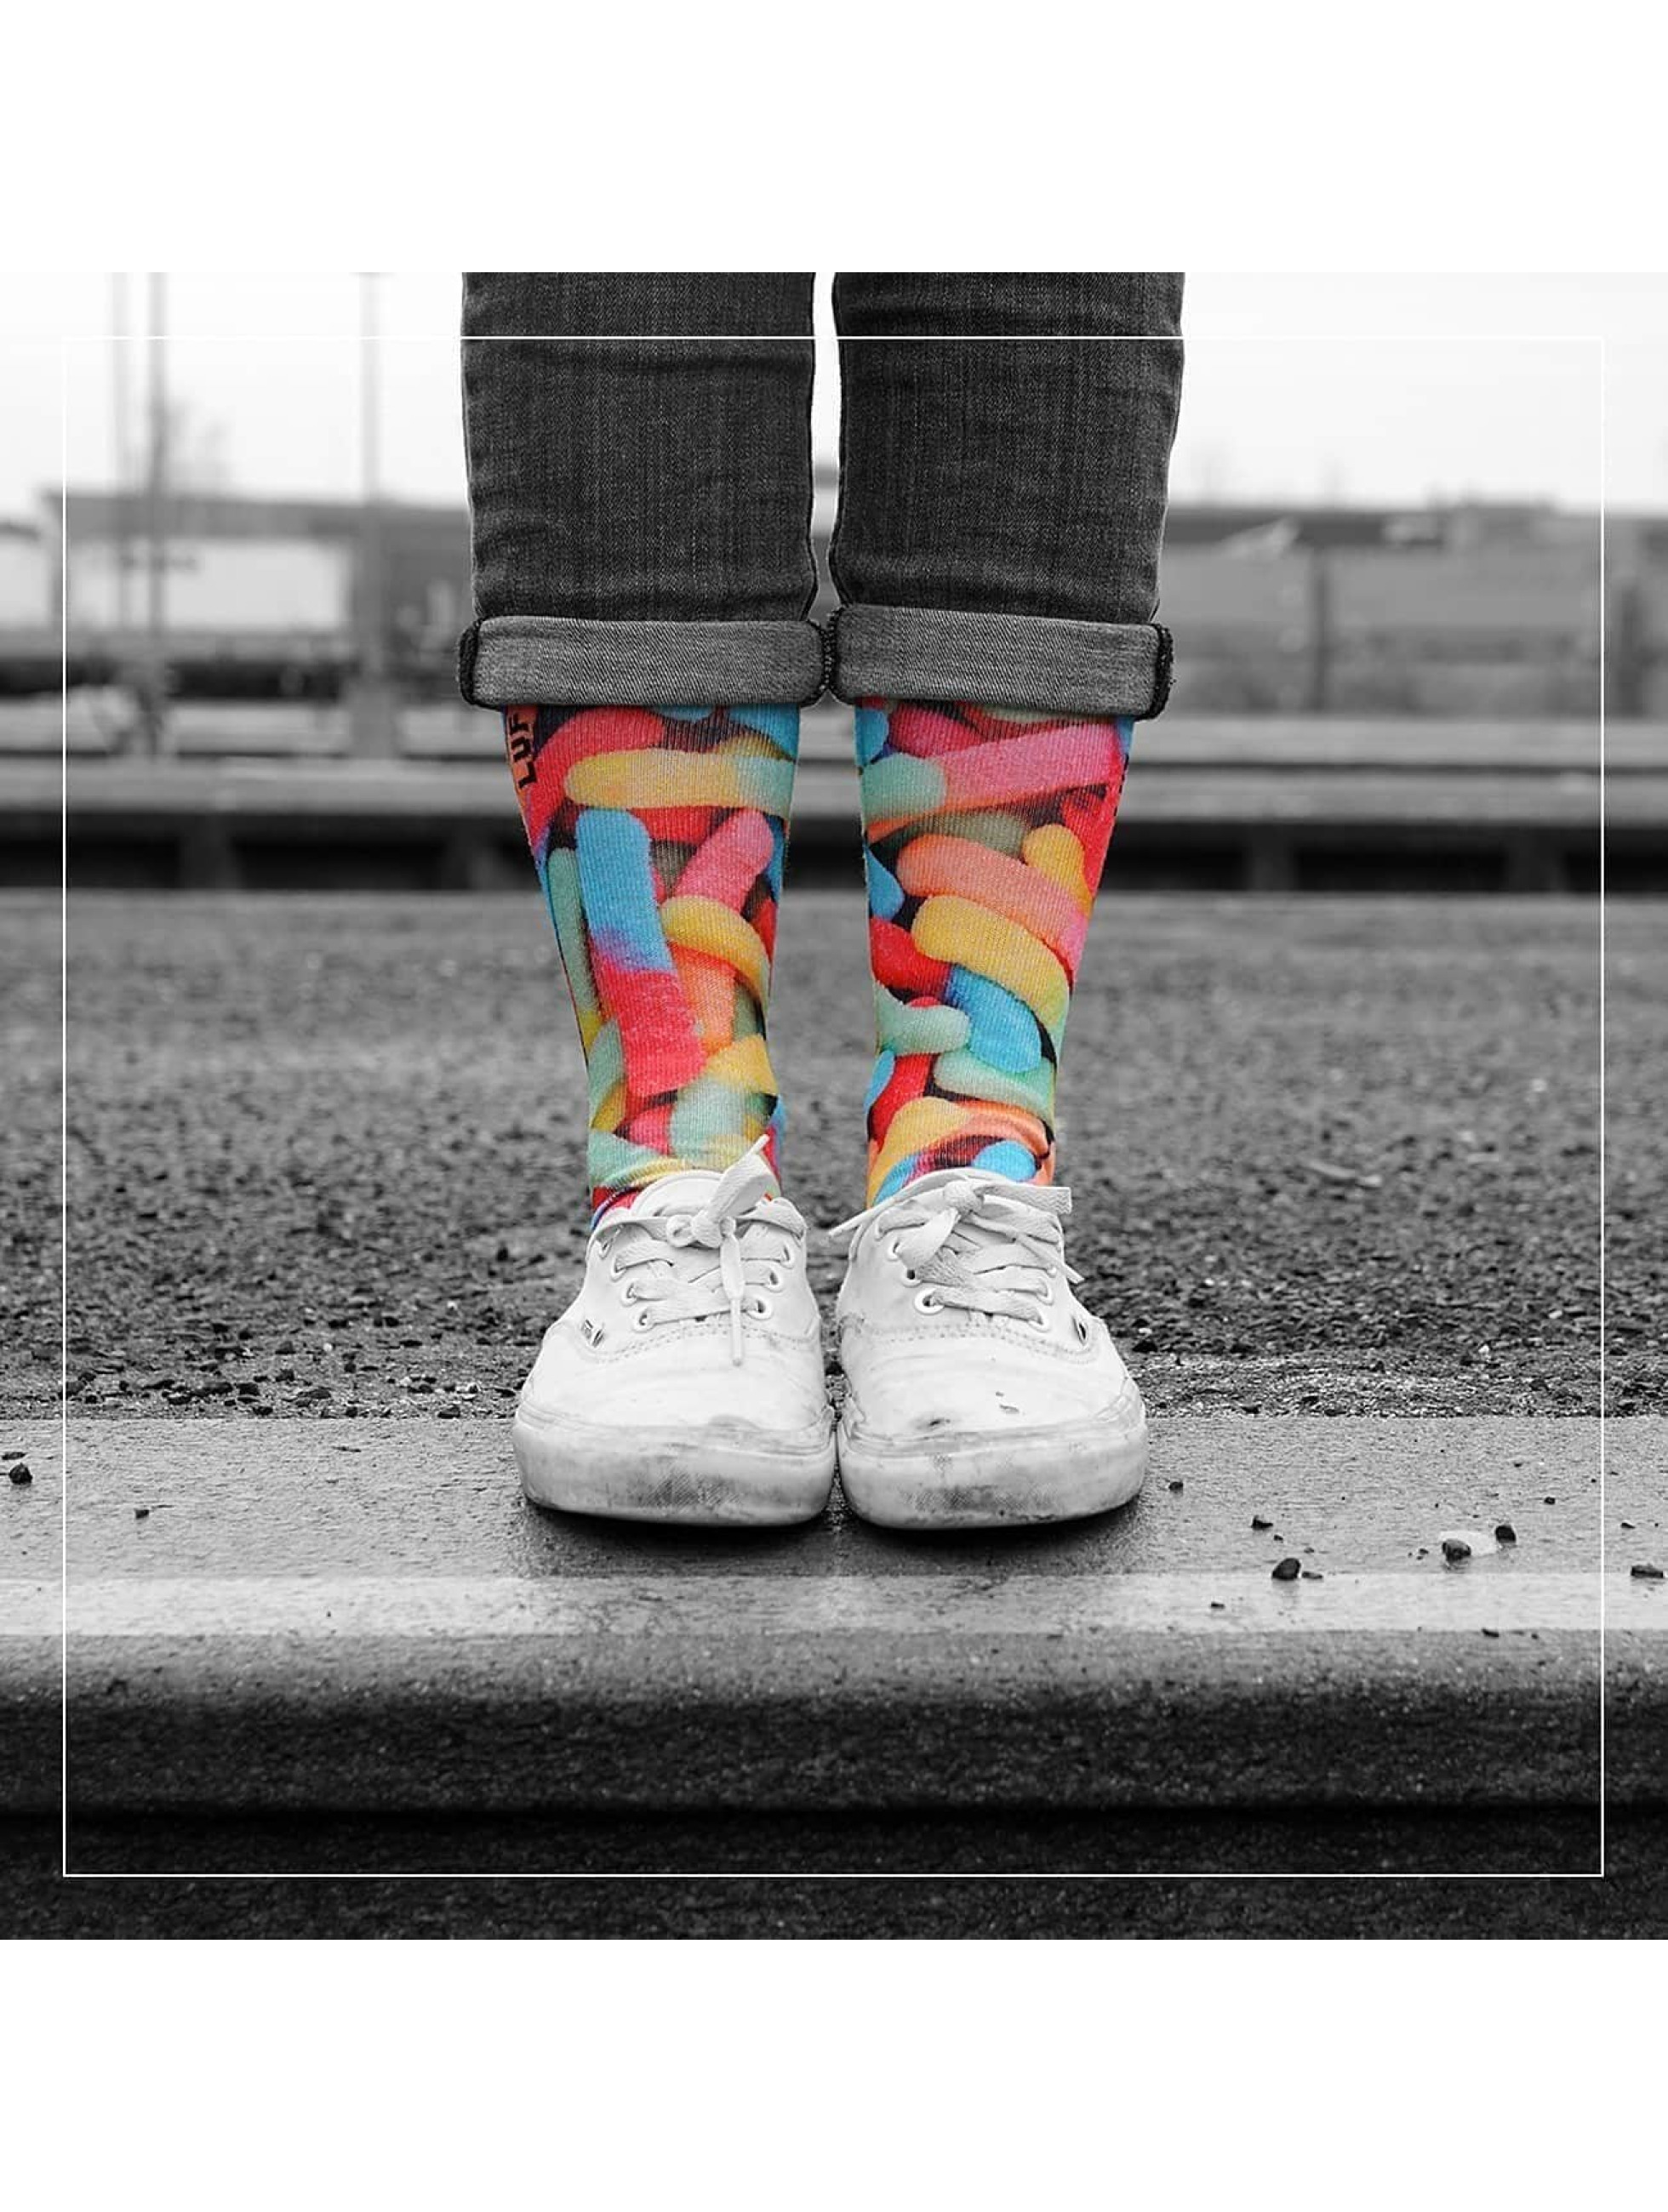 LUF SOX Socks Classics Gummy Worms colored